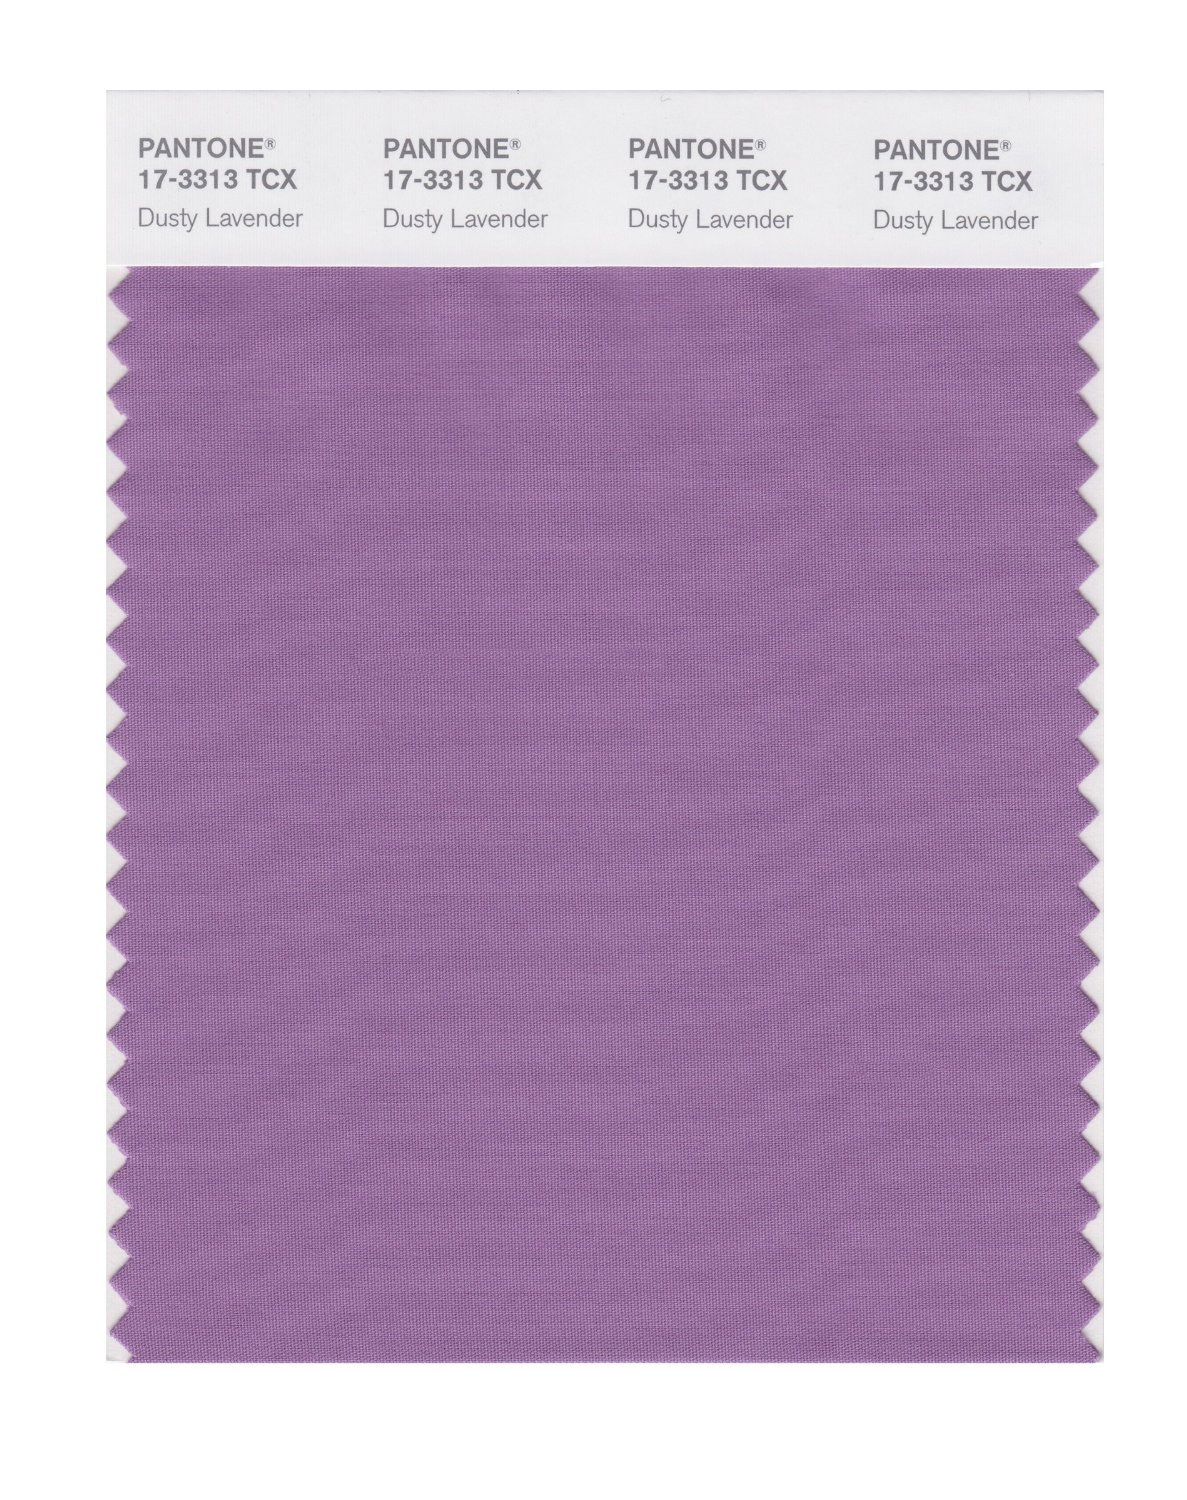 Pantone Smart Swatch 17-3313 Dusty Lavendar